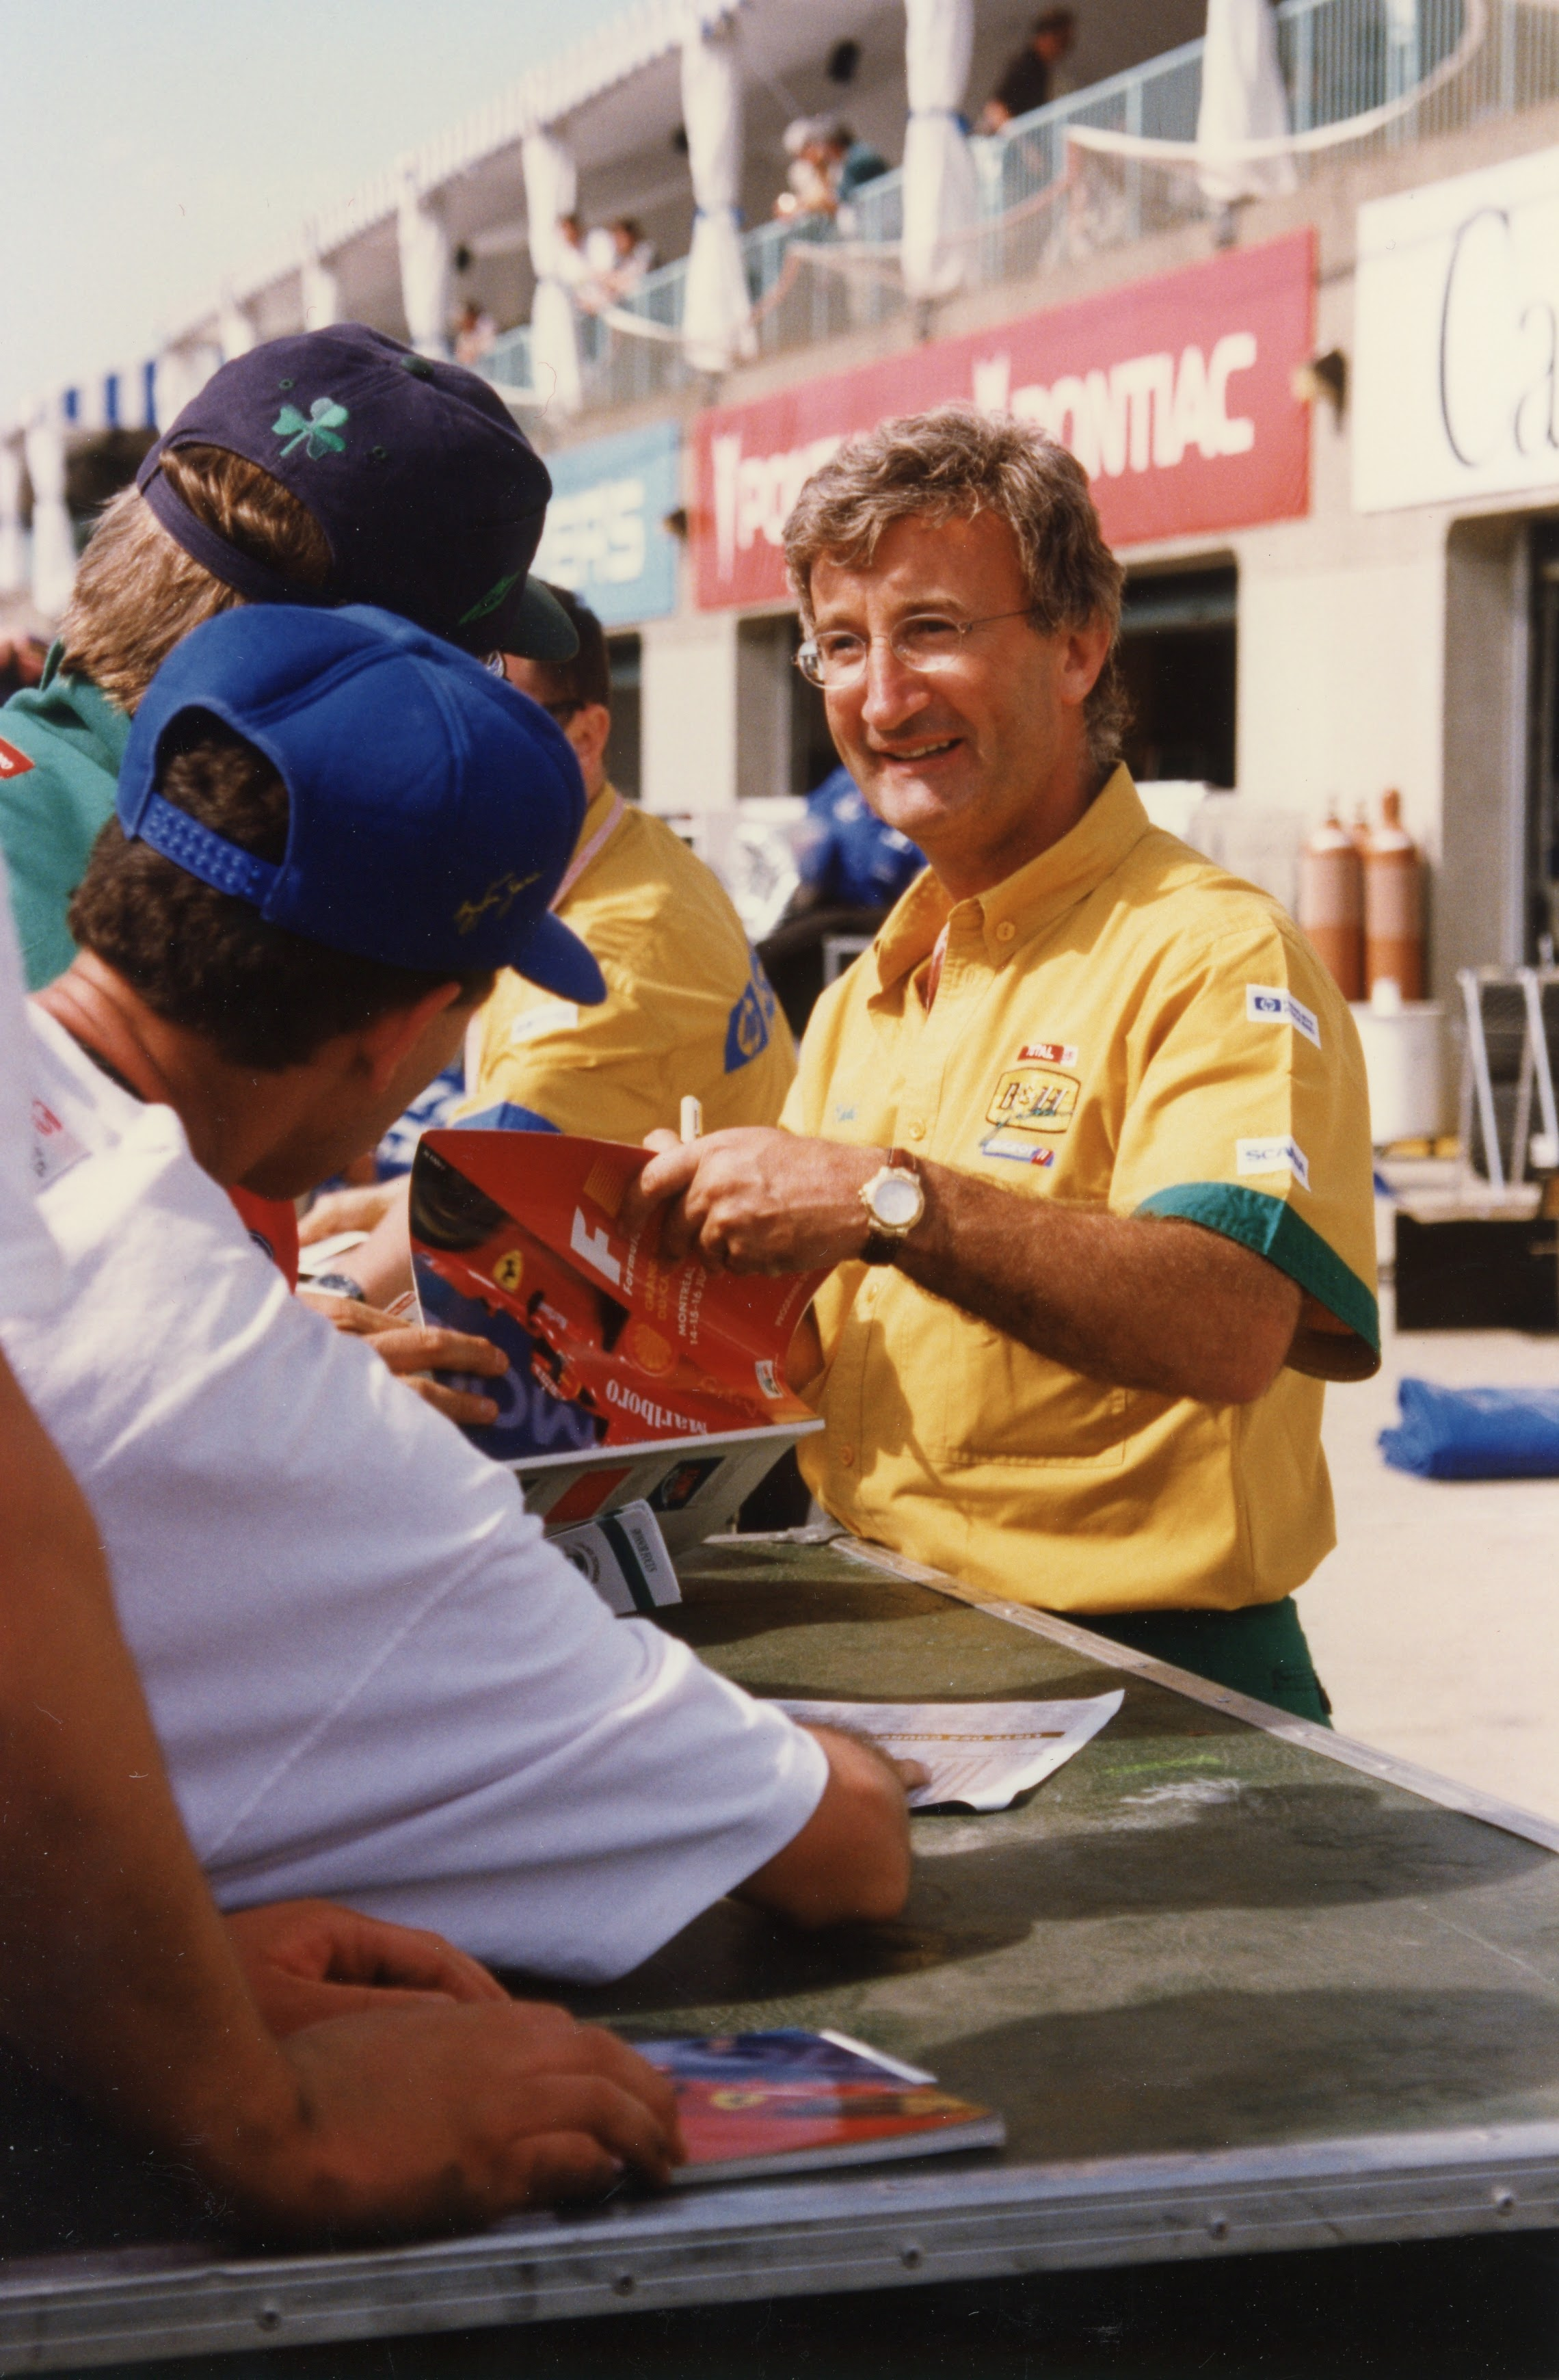 Eddie Jordan, founder and owner of Jordan Grand Prix, greets the fans in Montreal in 1996